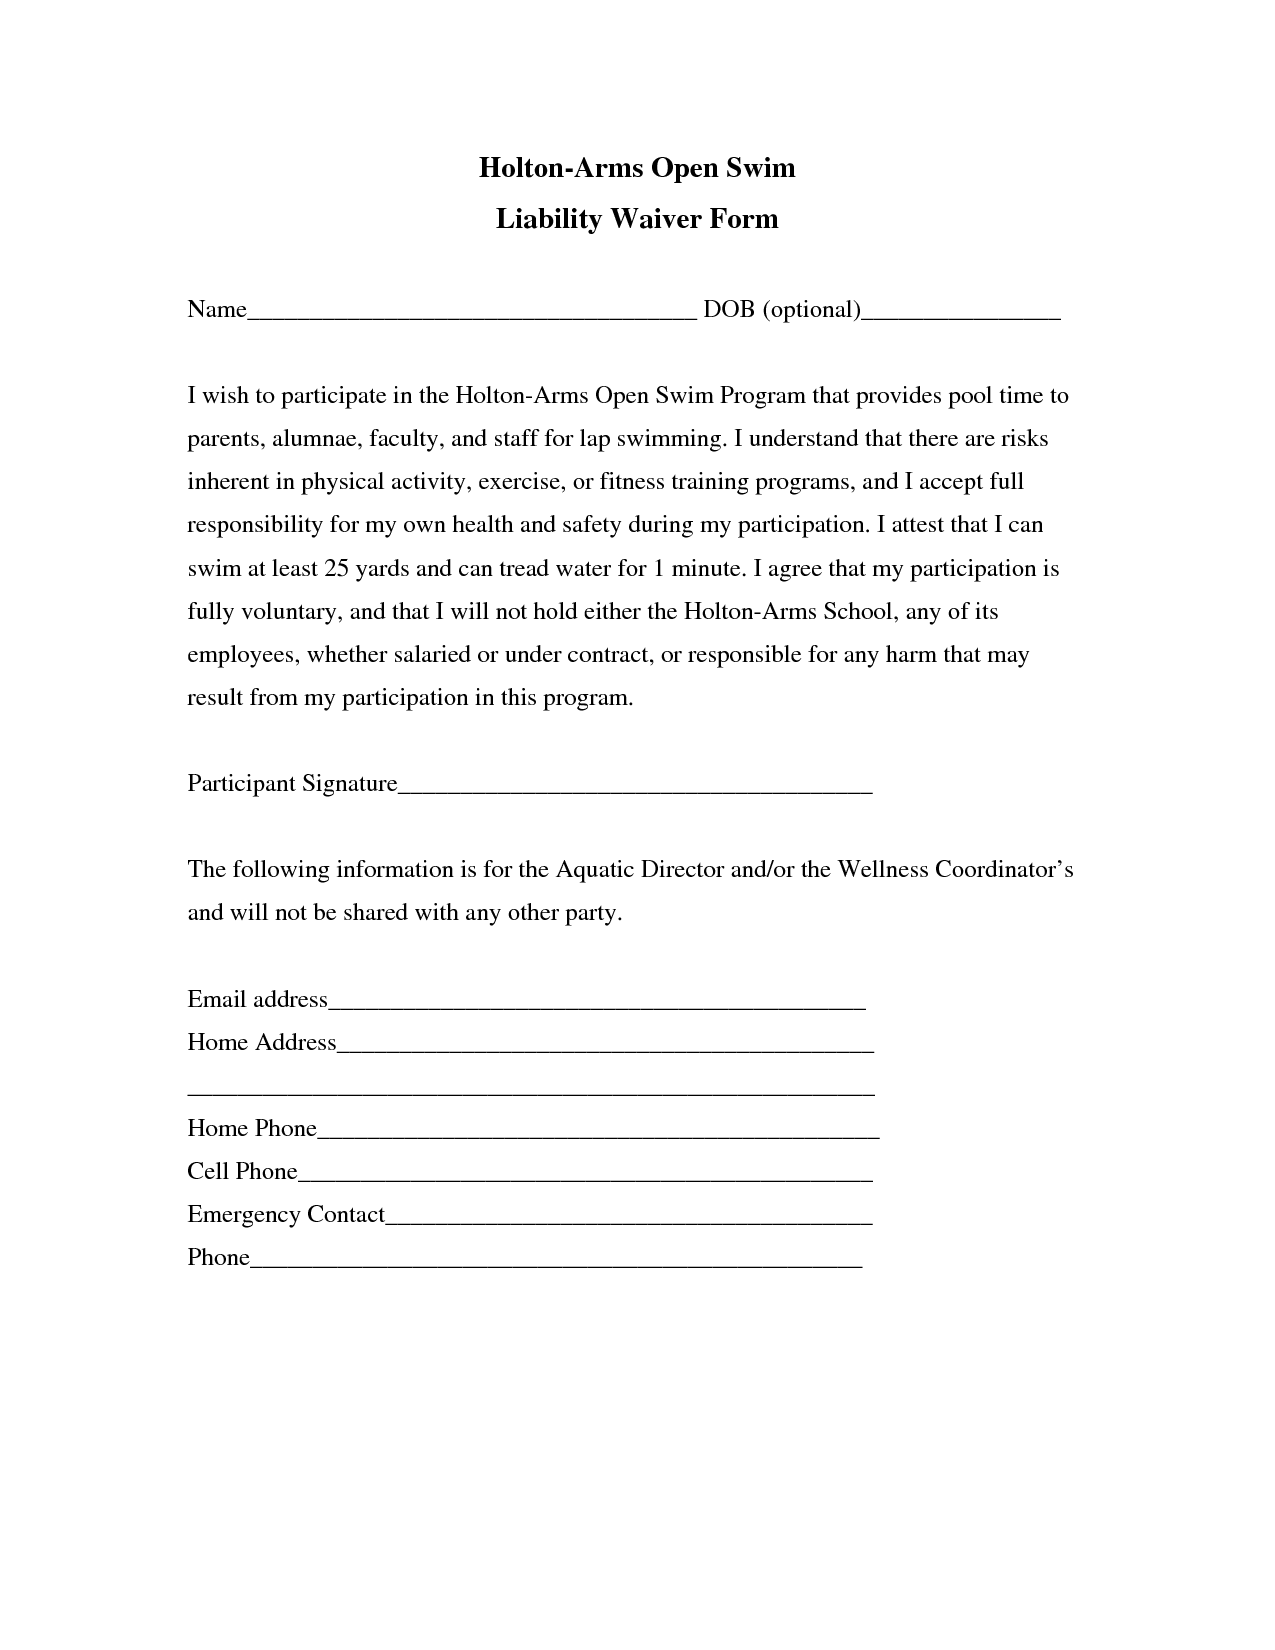 Liability Insurance Liability Insurance Waiver Template – Simple Liability Waiver